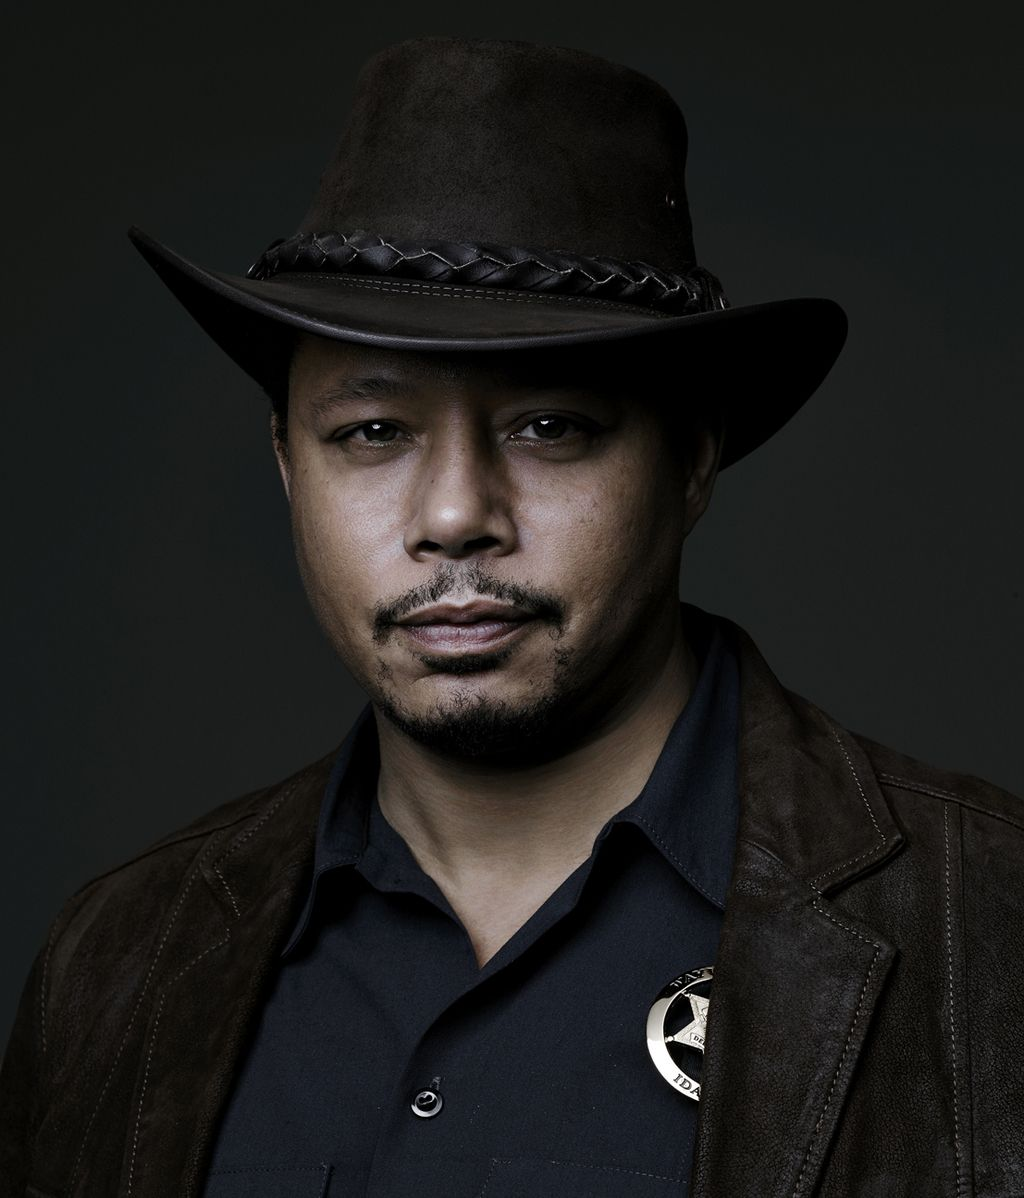 Terrence Howard - Wayward pines